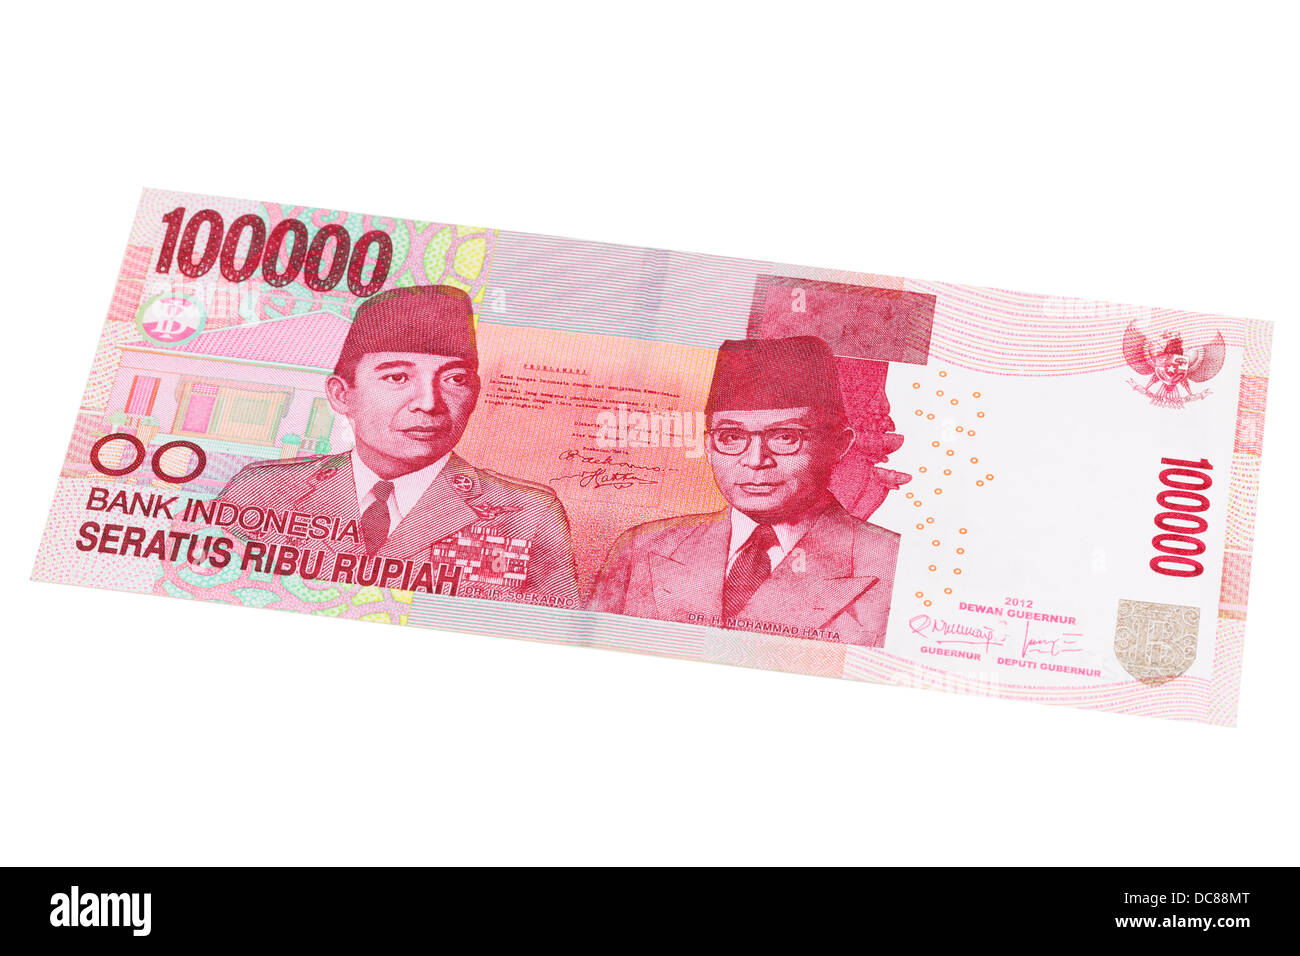 Indonesian one hundred thousand rupiah note on a white background - Stock Image